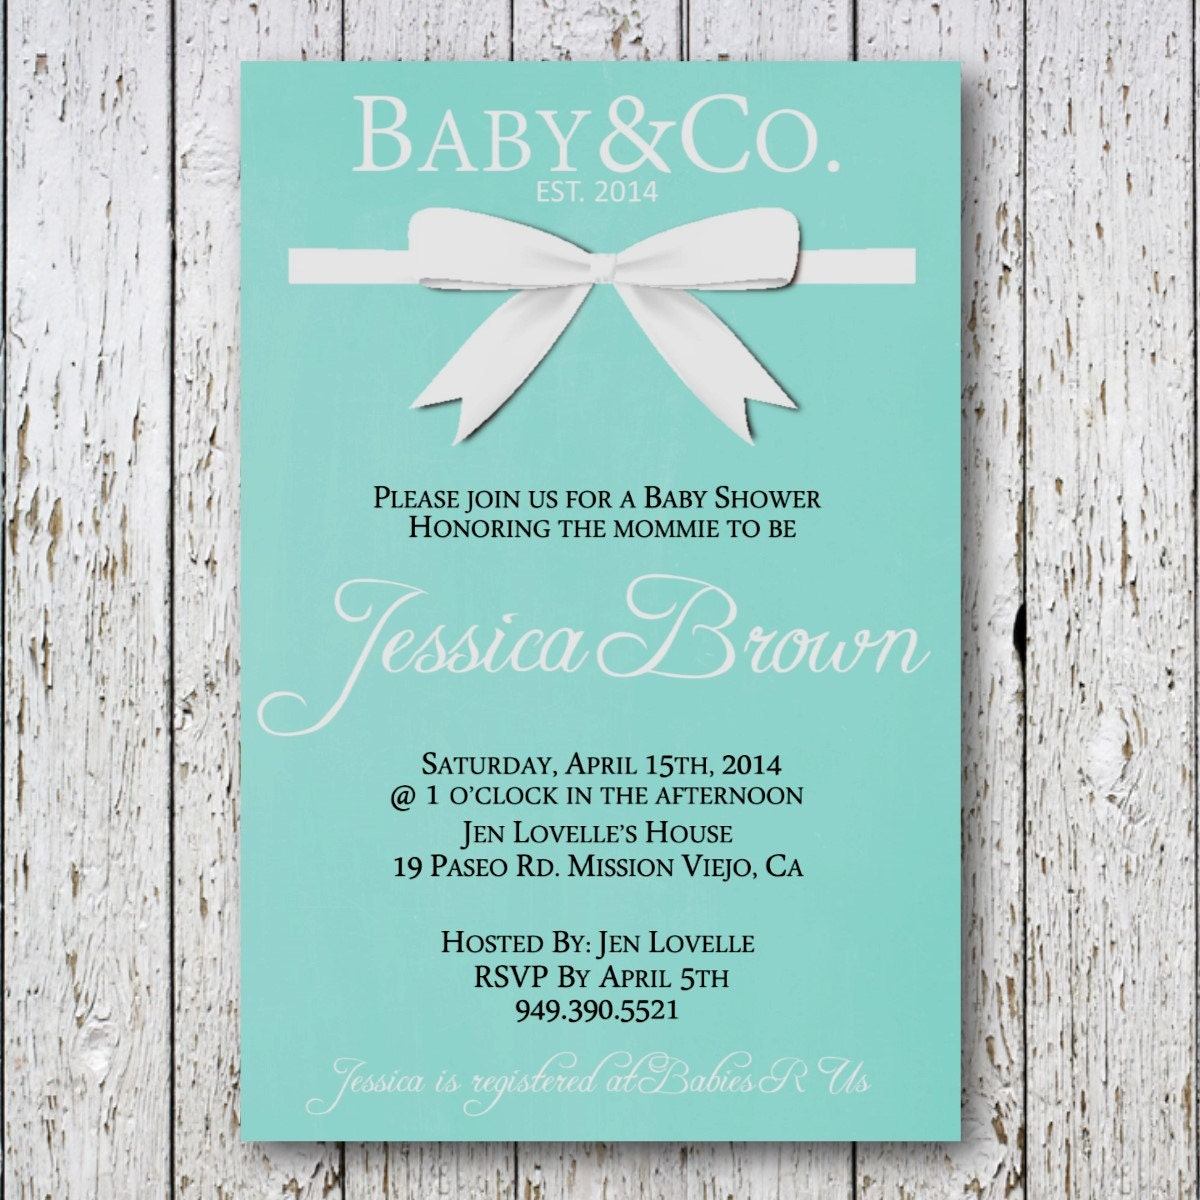 Baby and Co baby shower invitation Tiffany by SimpleDevineDesign: www.etsy.com/listing/181503703/baby-and-co-baby-shower-invitation